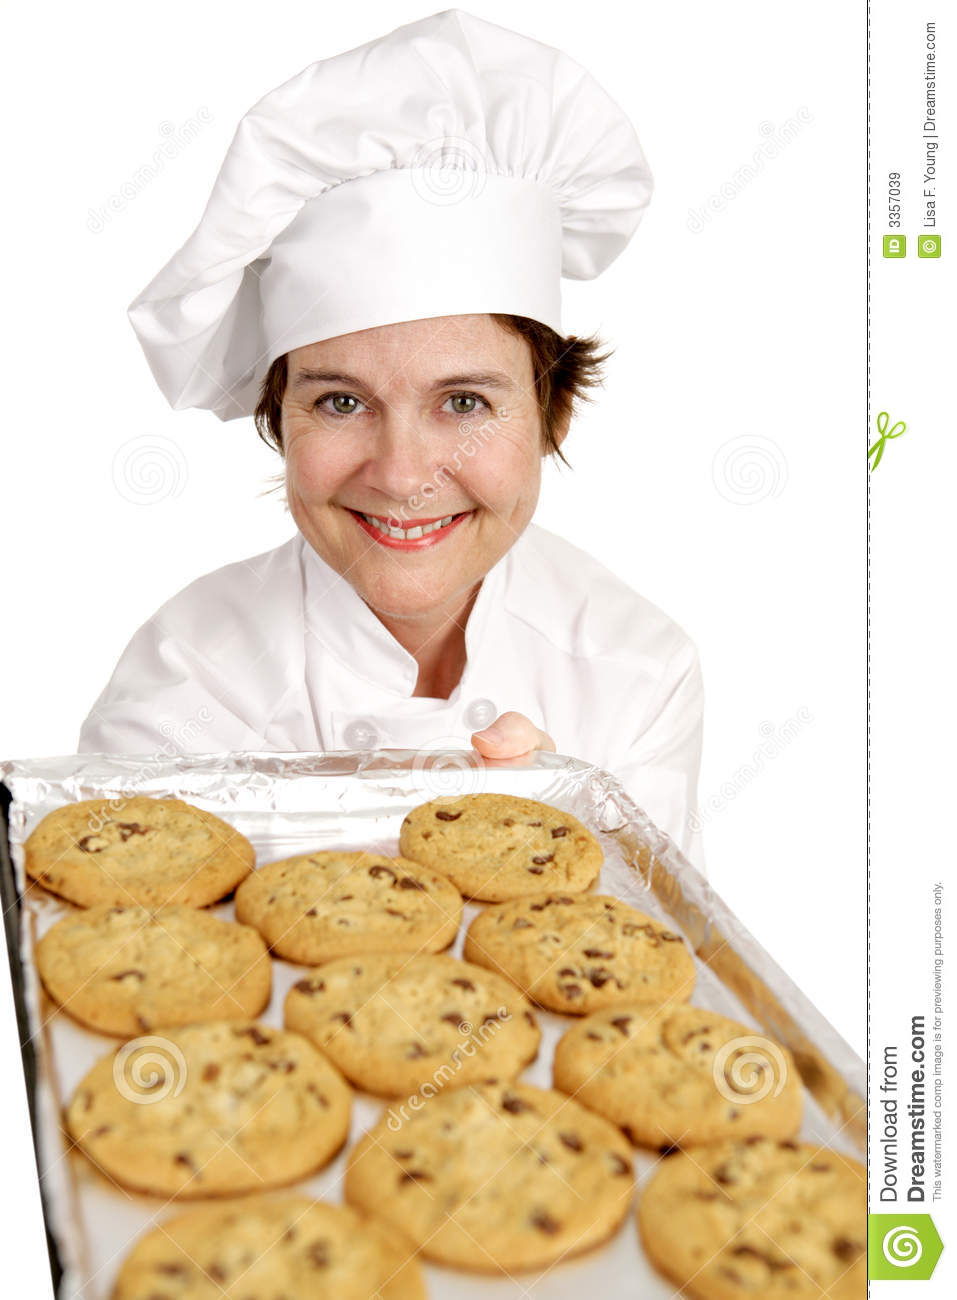 Chef Baking Cookies Stock Image Image Of Mature